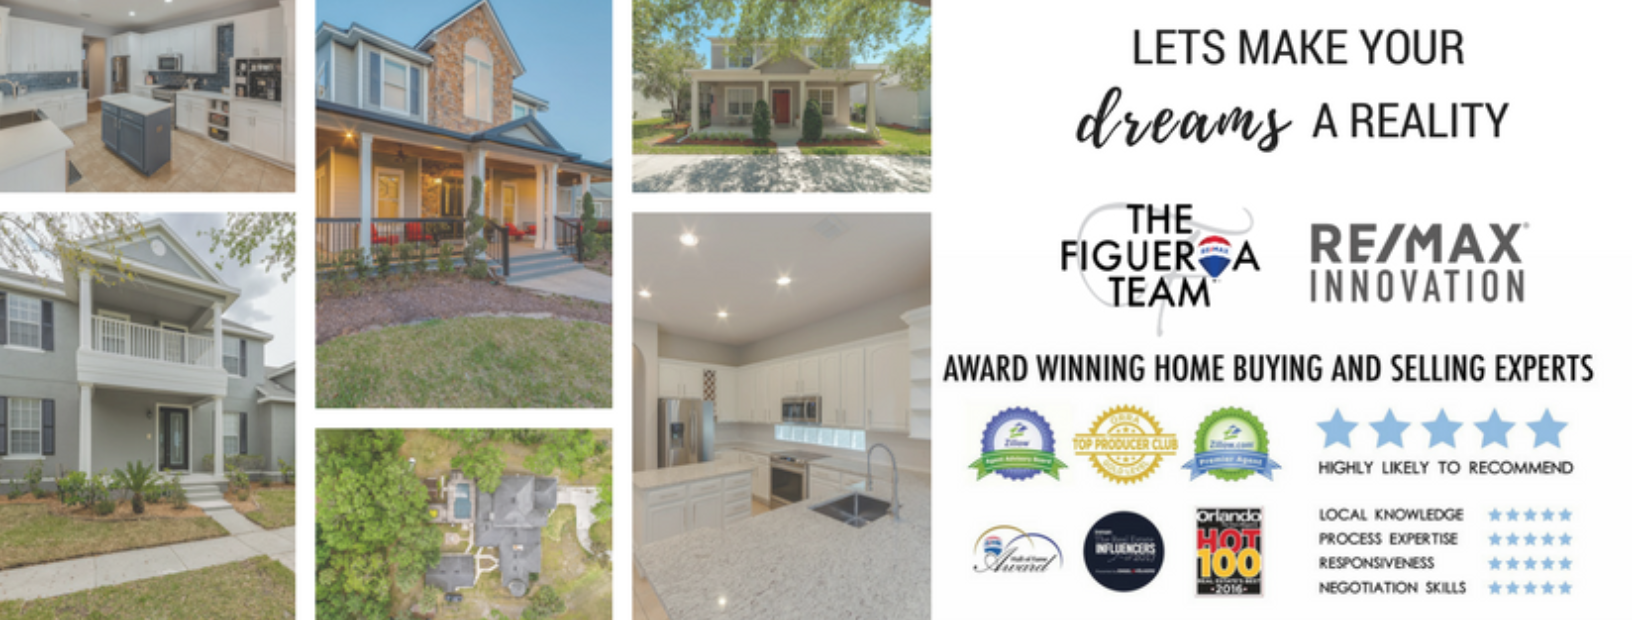 The Figueroa Team - Orlando Real Estate - real estate cover photos - tips from the pros